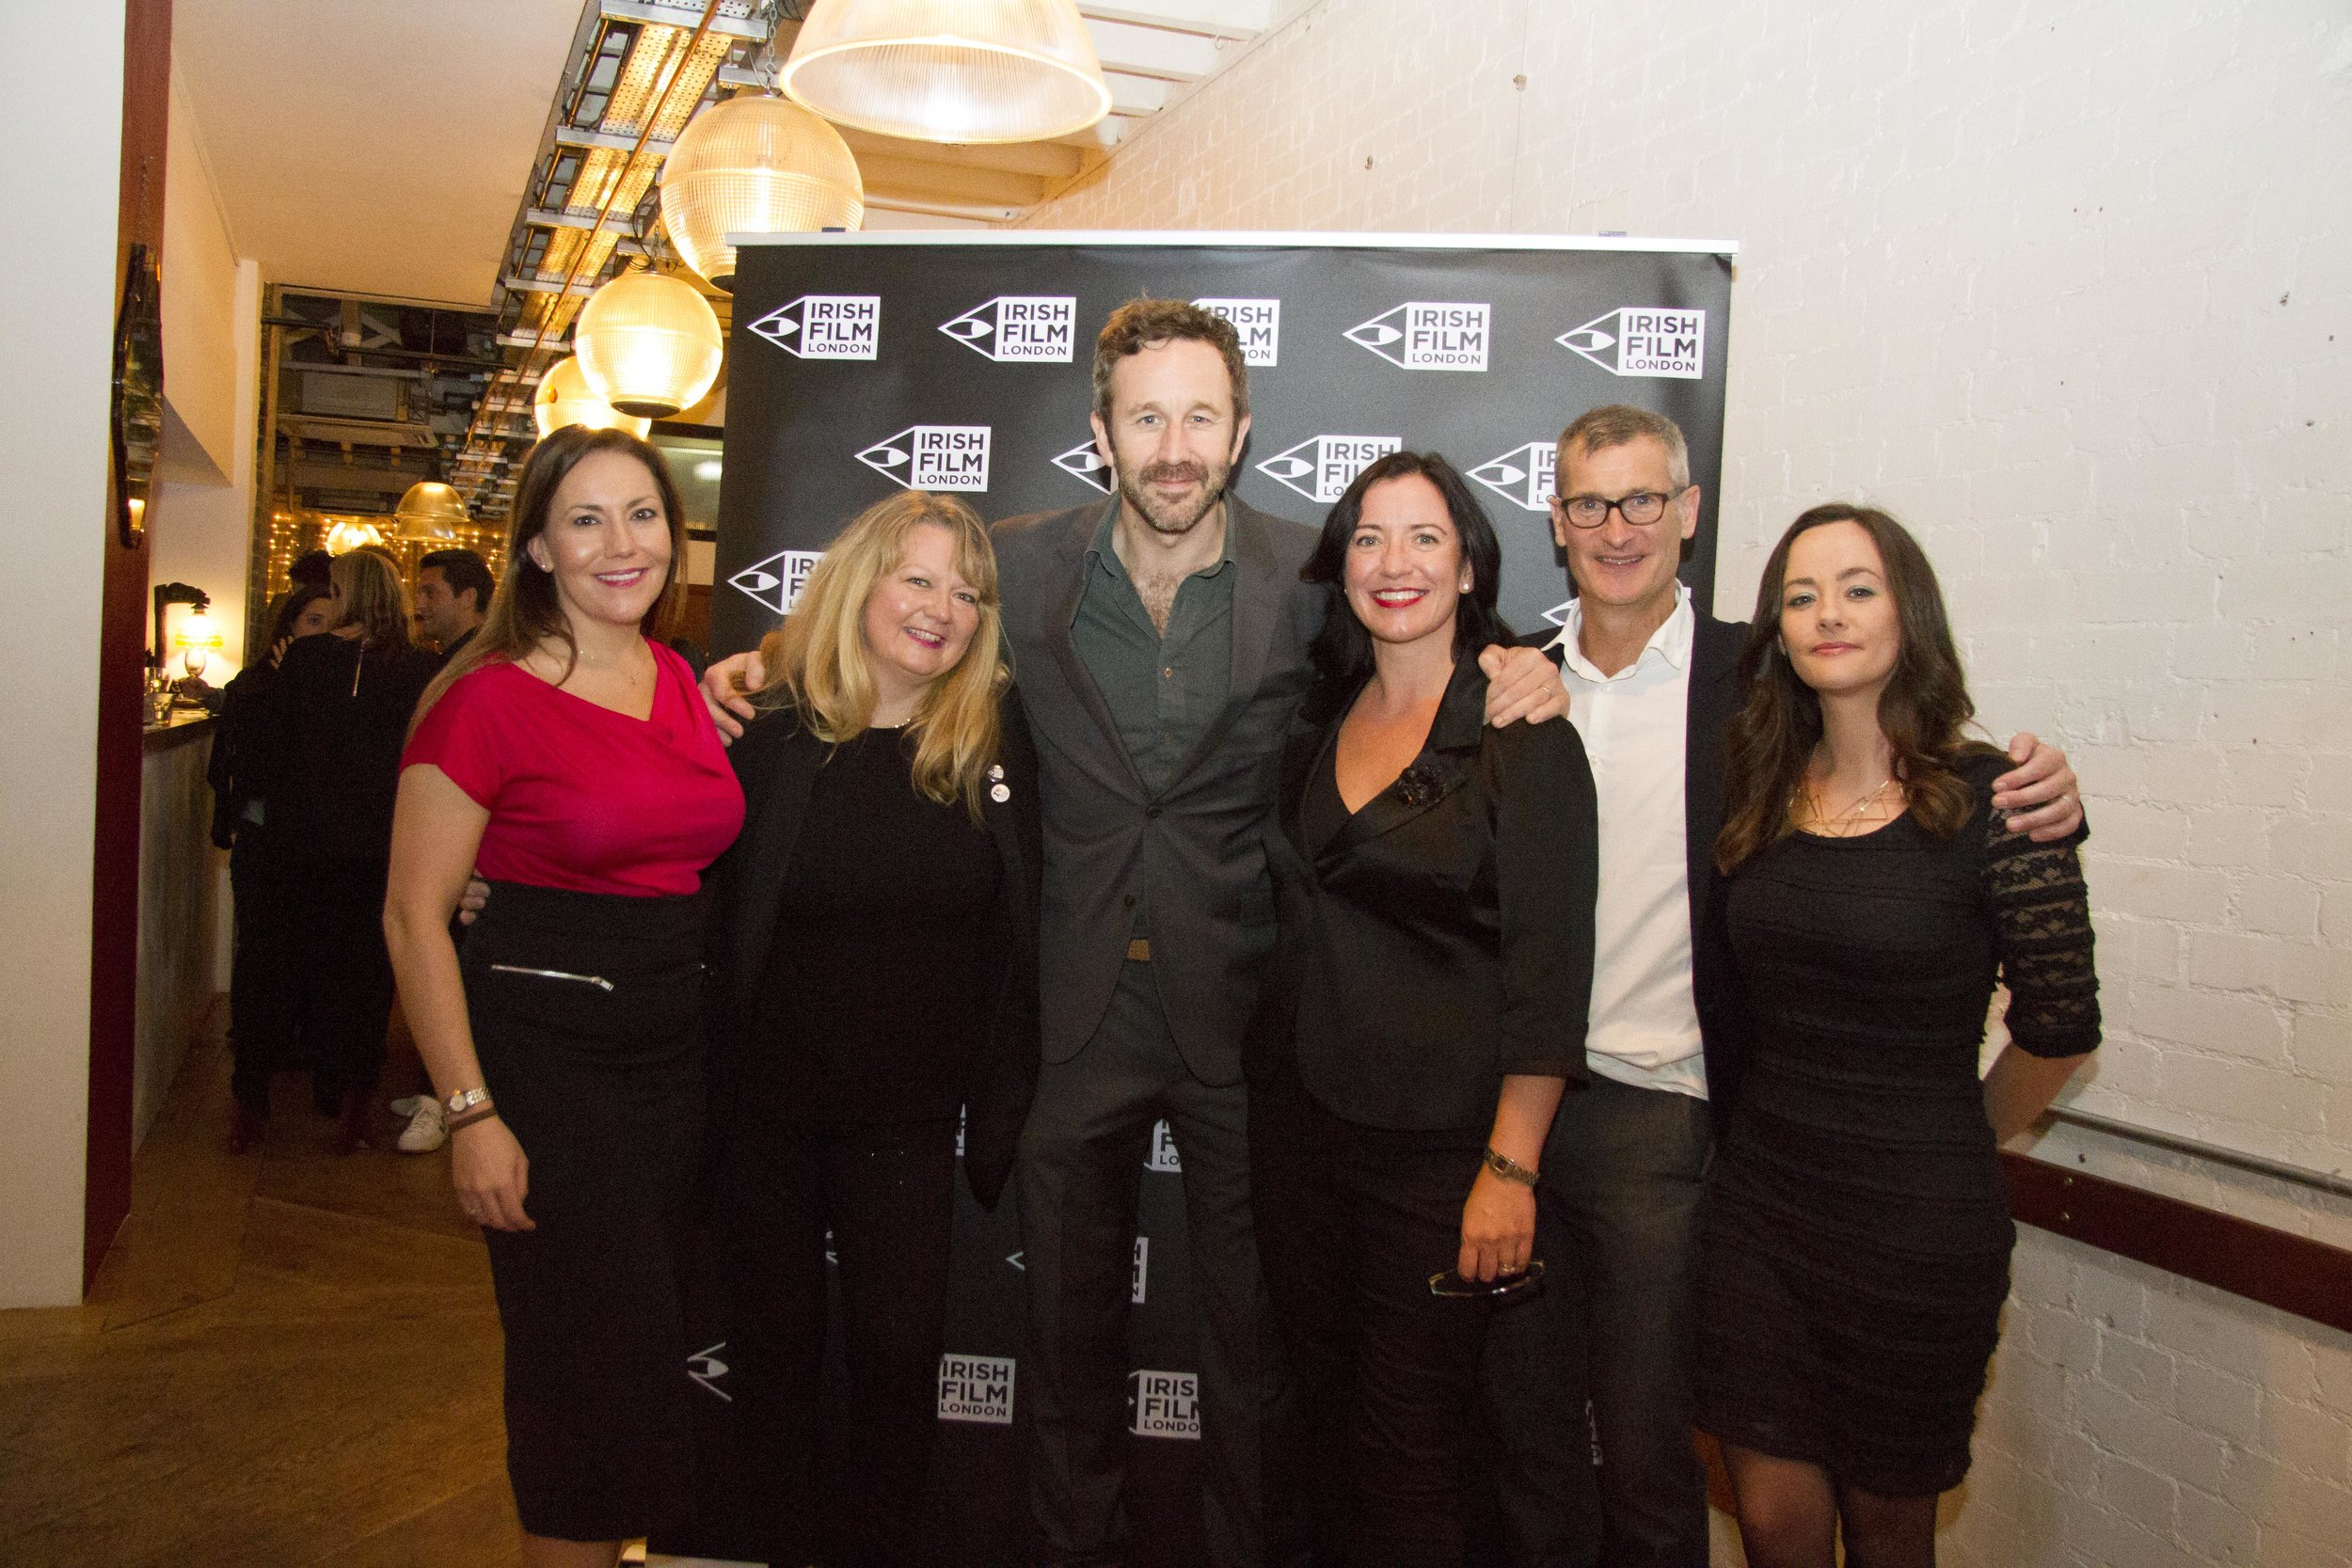 Irish Film London Board of Directors with Chris O'Dowd